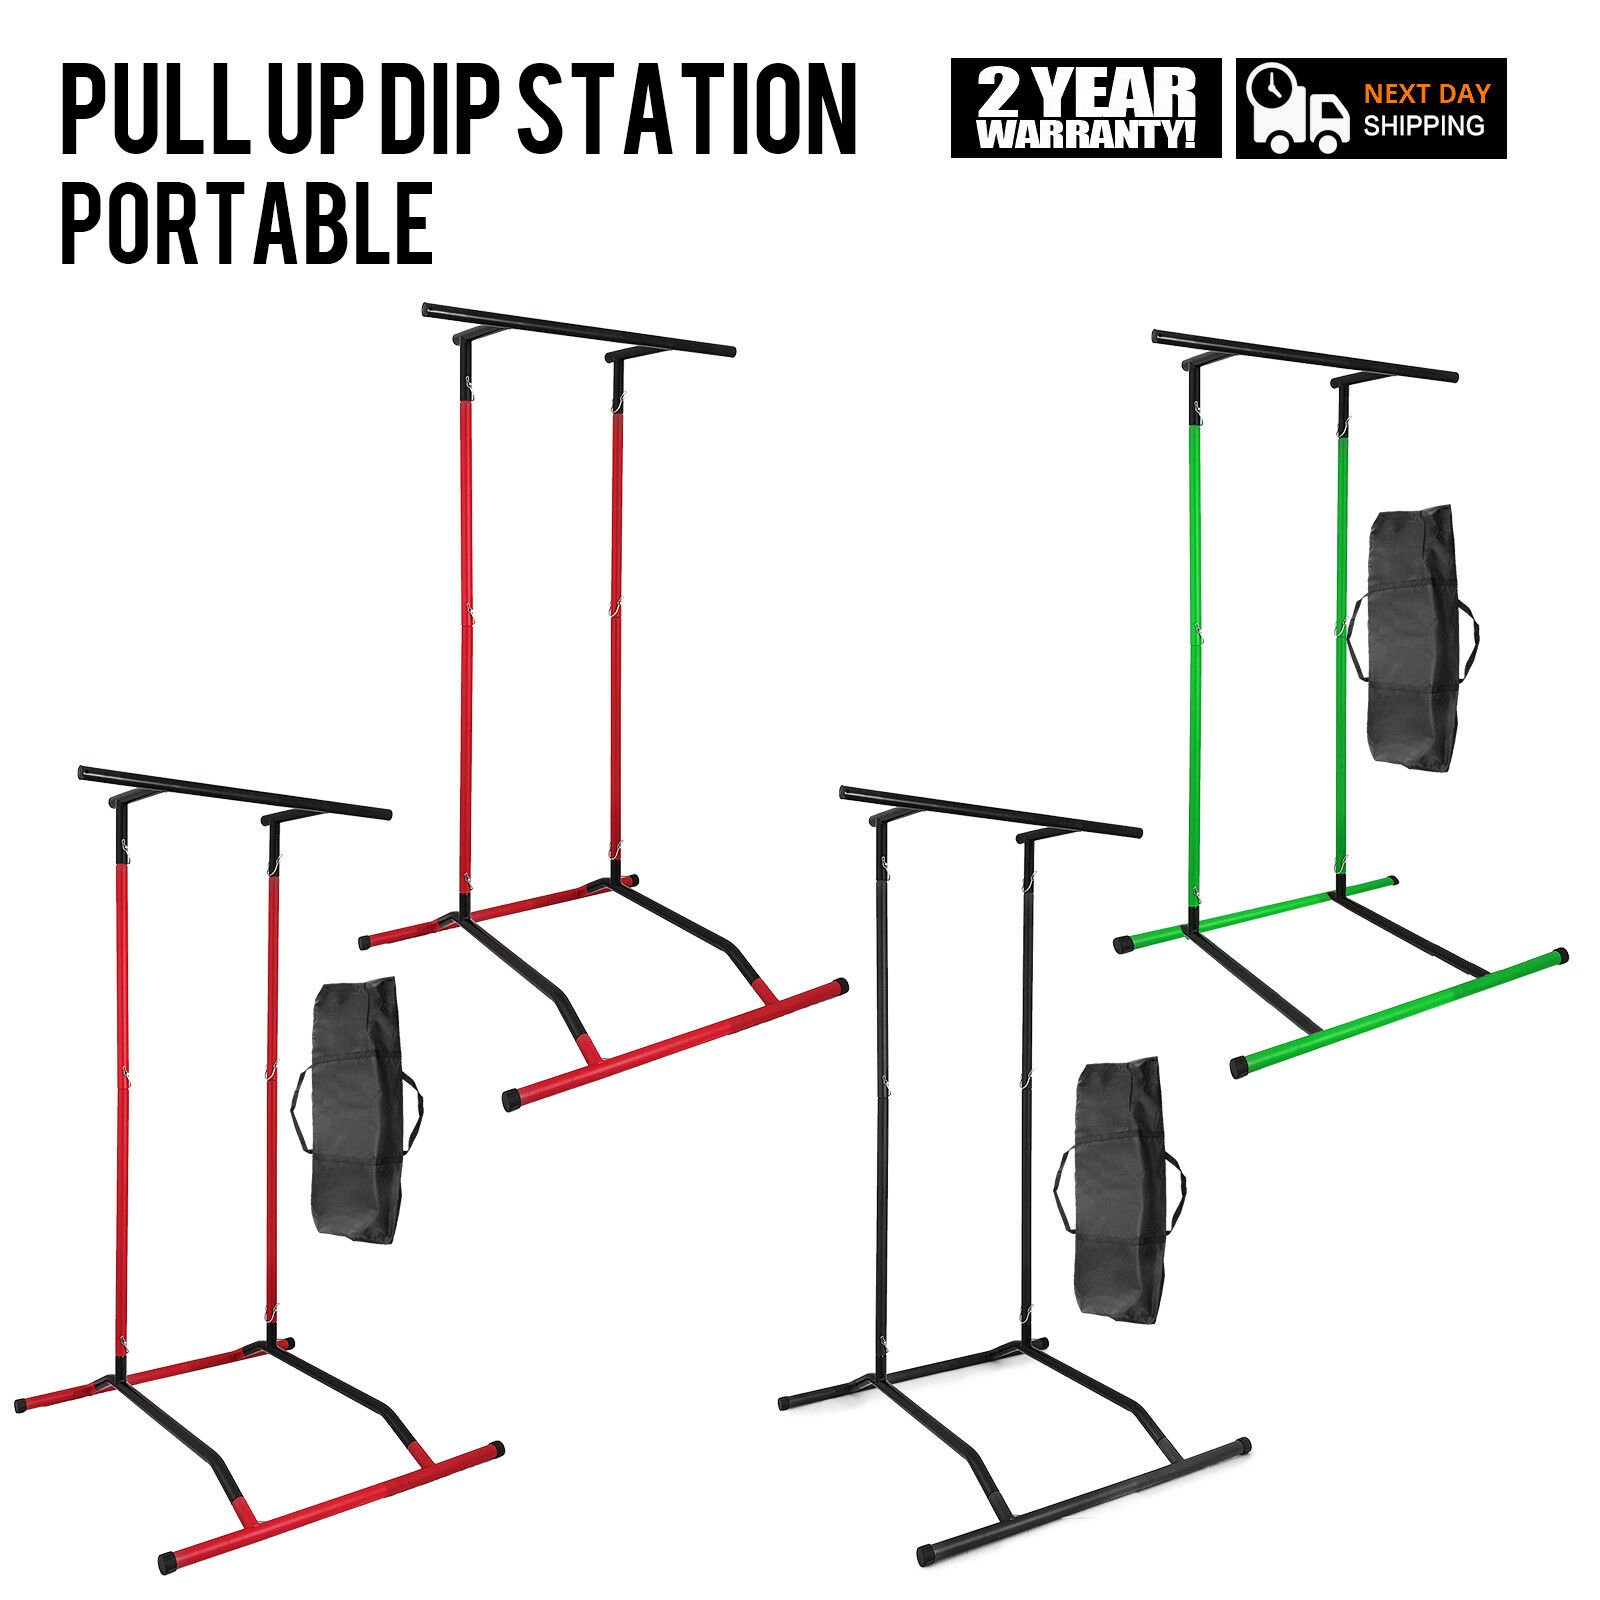 Portable Multi Pull Up Dip Station Fitness Power Tower  Workout Carry Bag  selling well all over the world